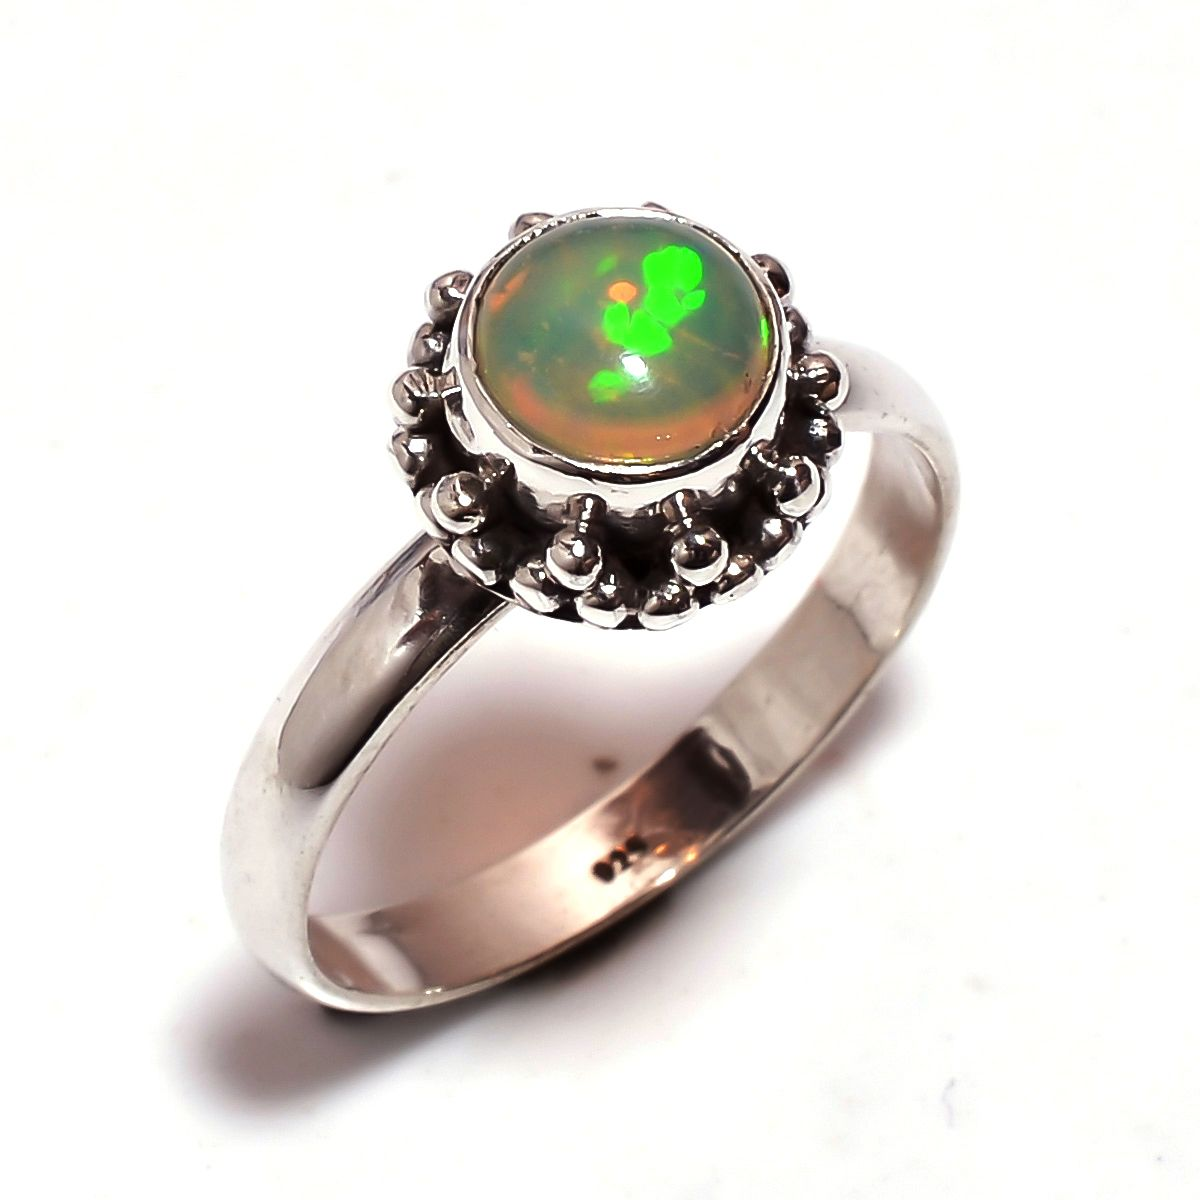 Ethiopian Opal Gemstone 925 Sterling Silver Ring Size 7.25